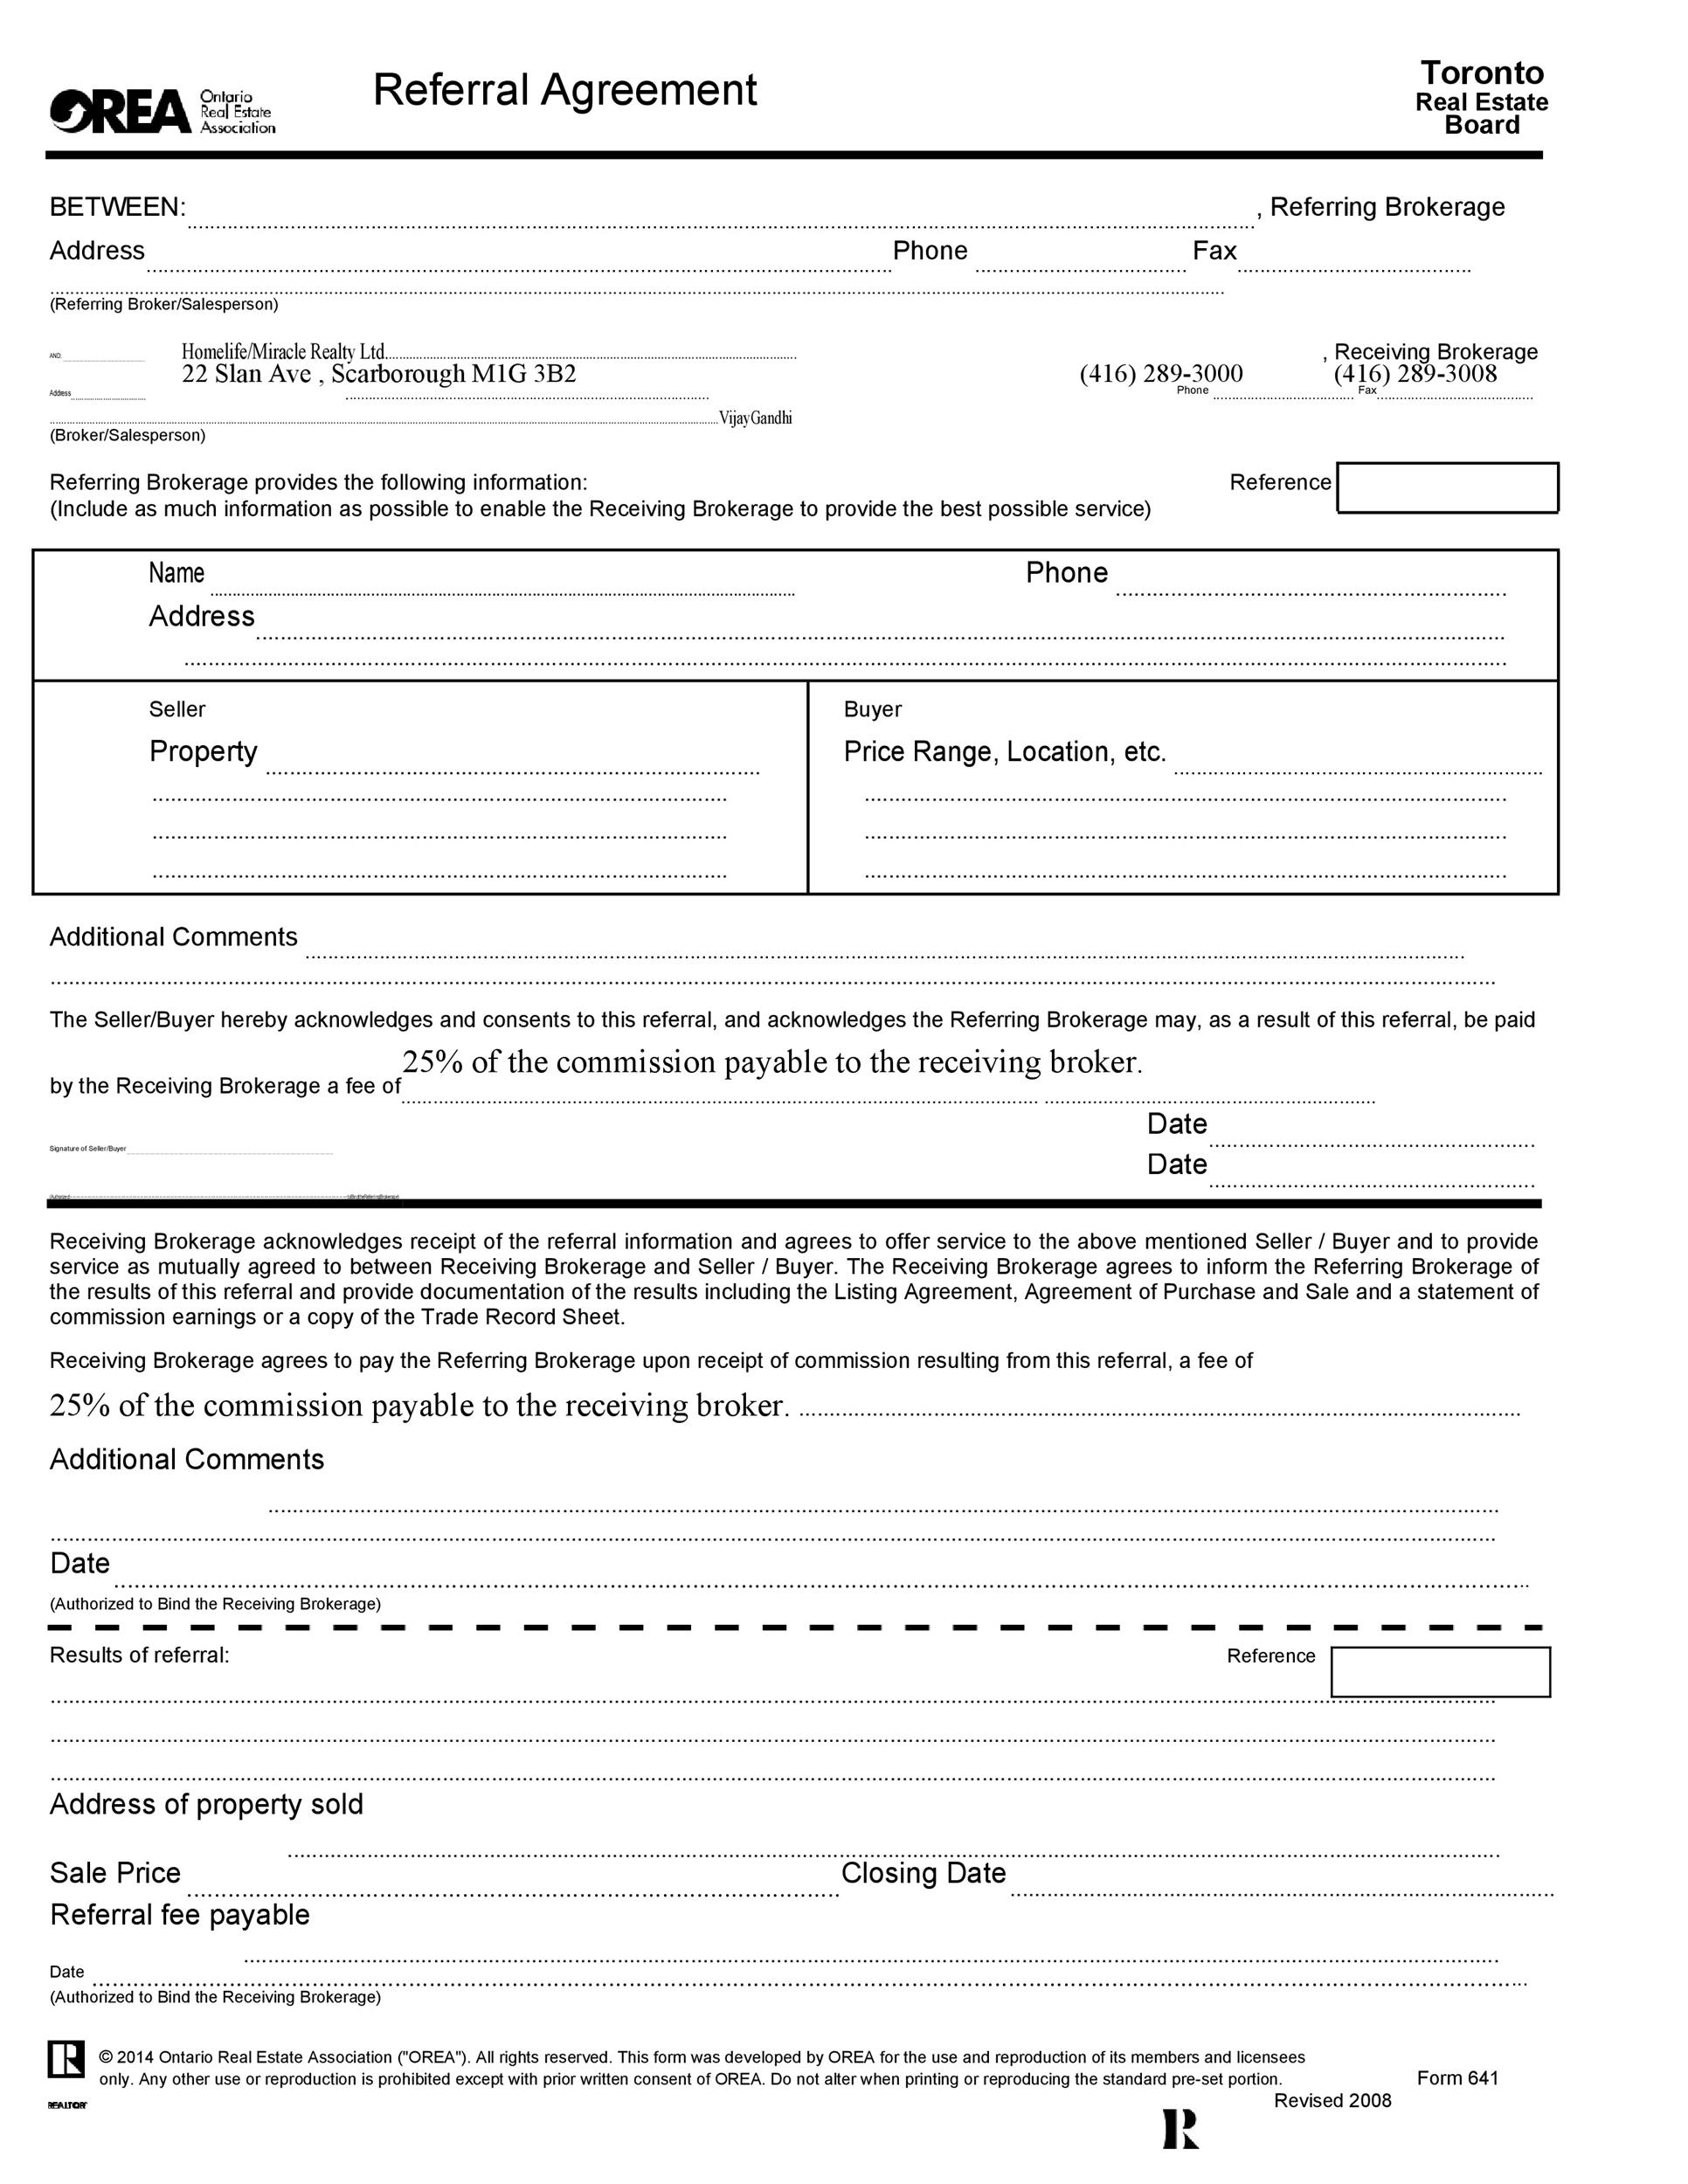 Free referral agreement template 35